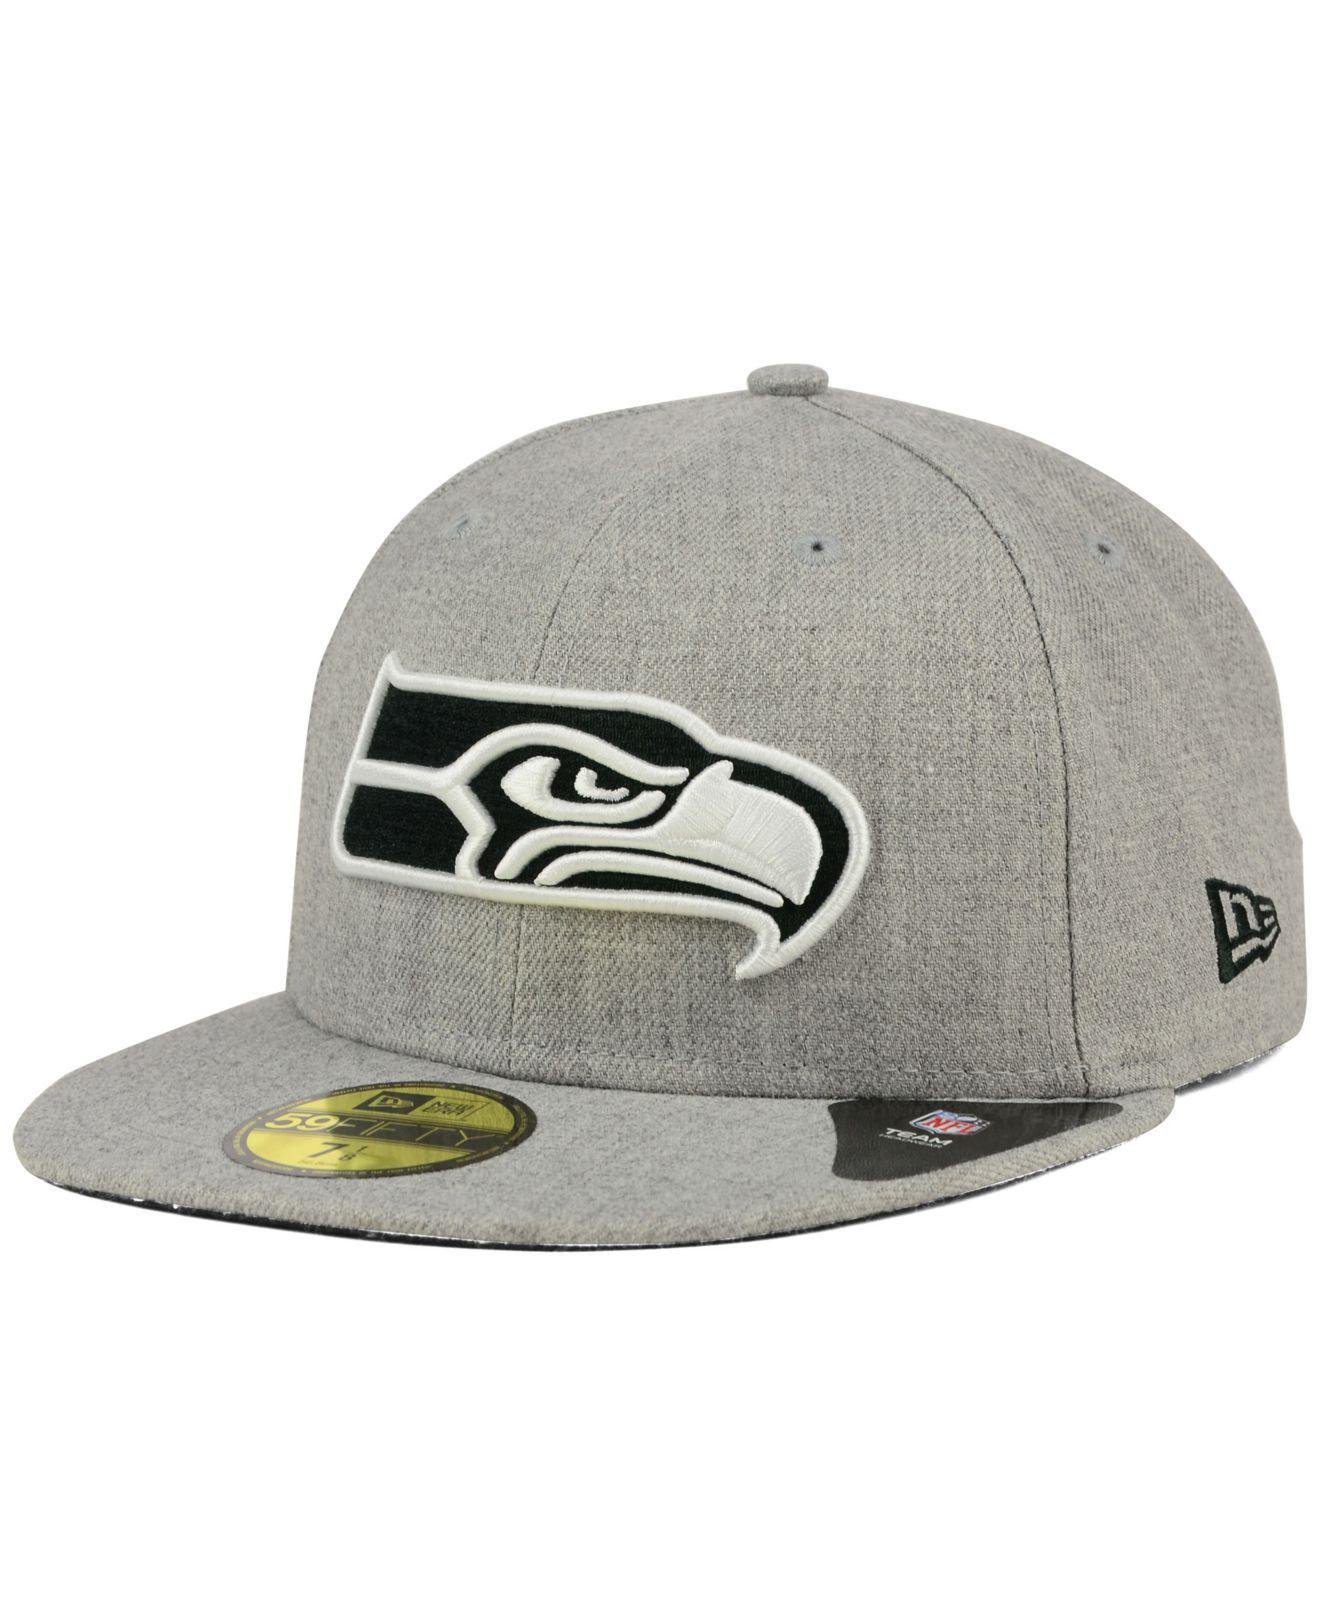 Lyst - KTZ Seattle Seahawks Heather Black White 59fifty Cap in Gray ... c0b64aaa90c3